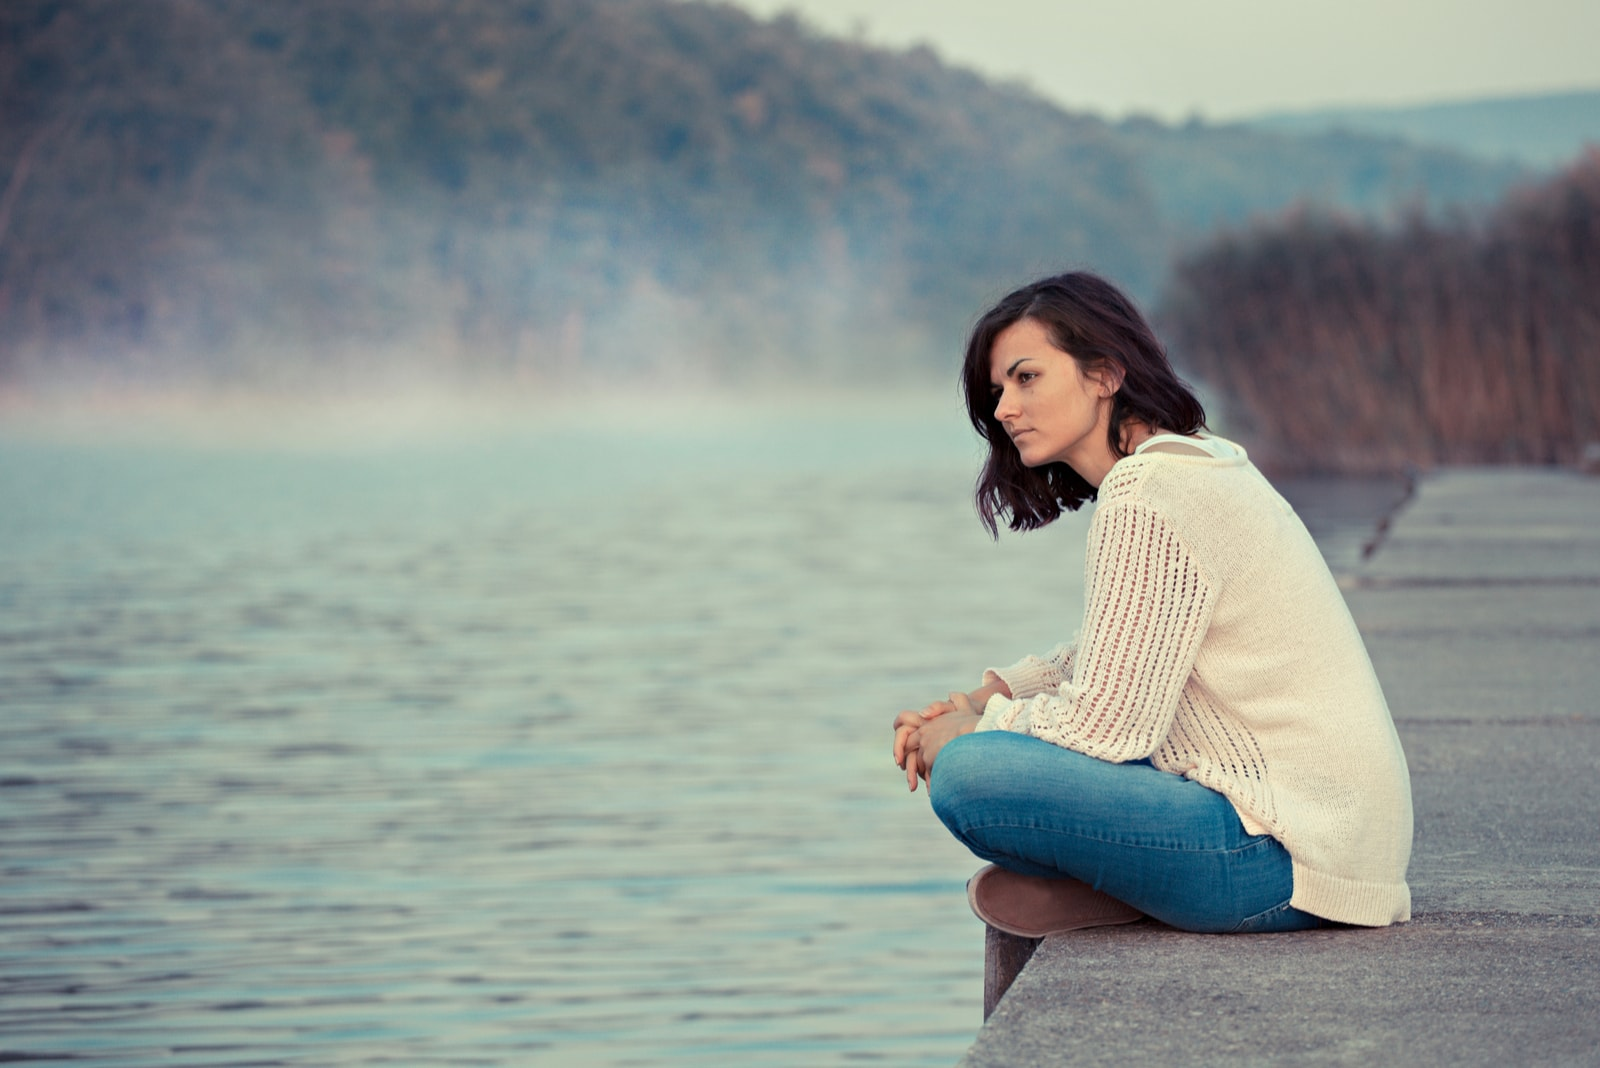 pensive woman sitting by the lake